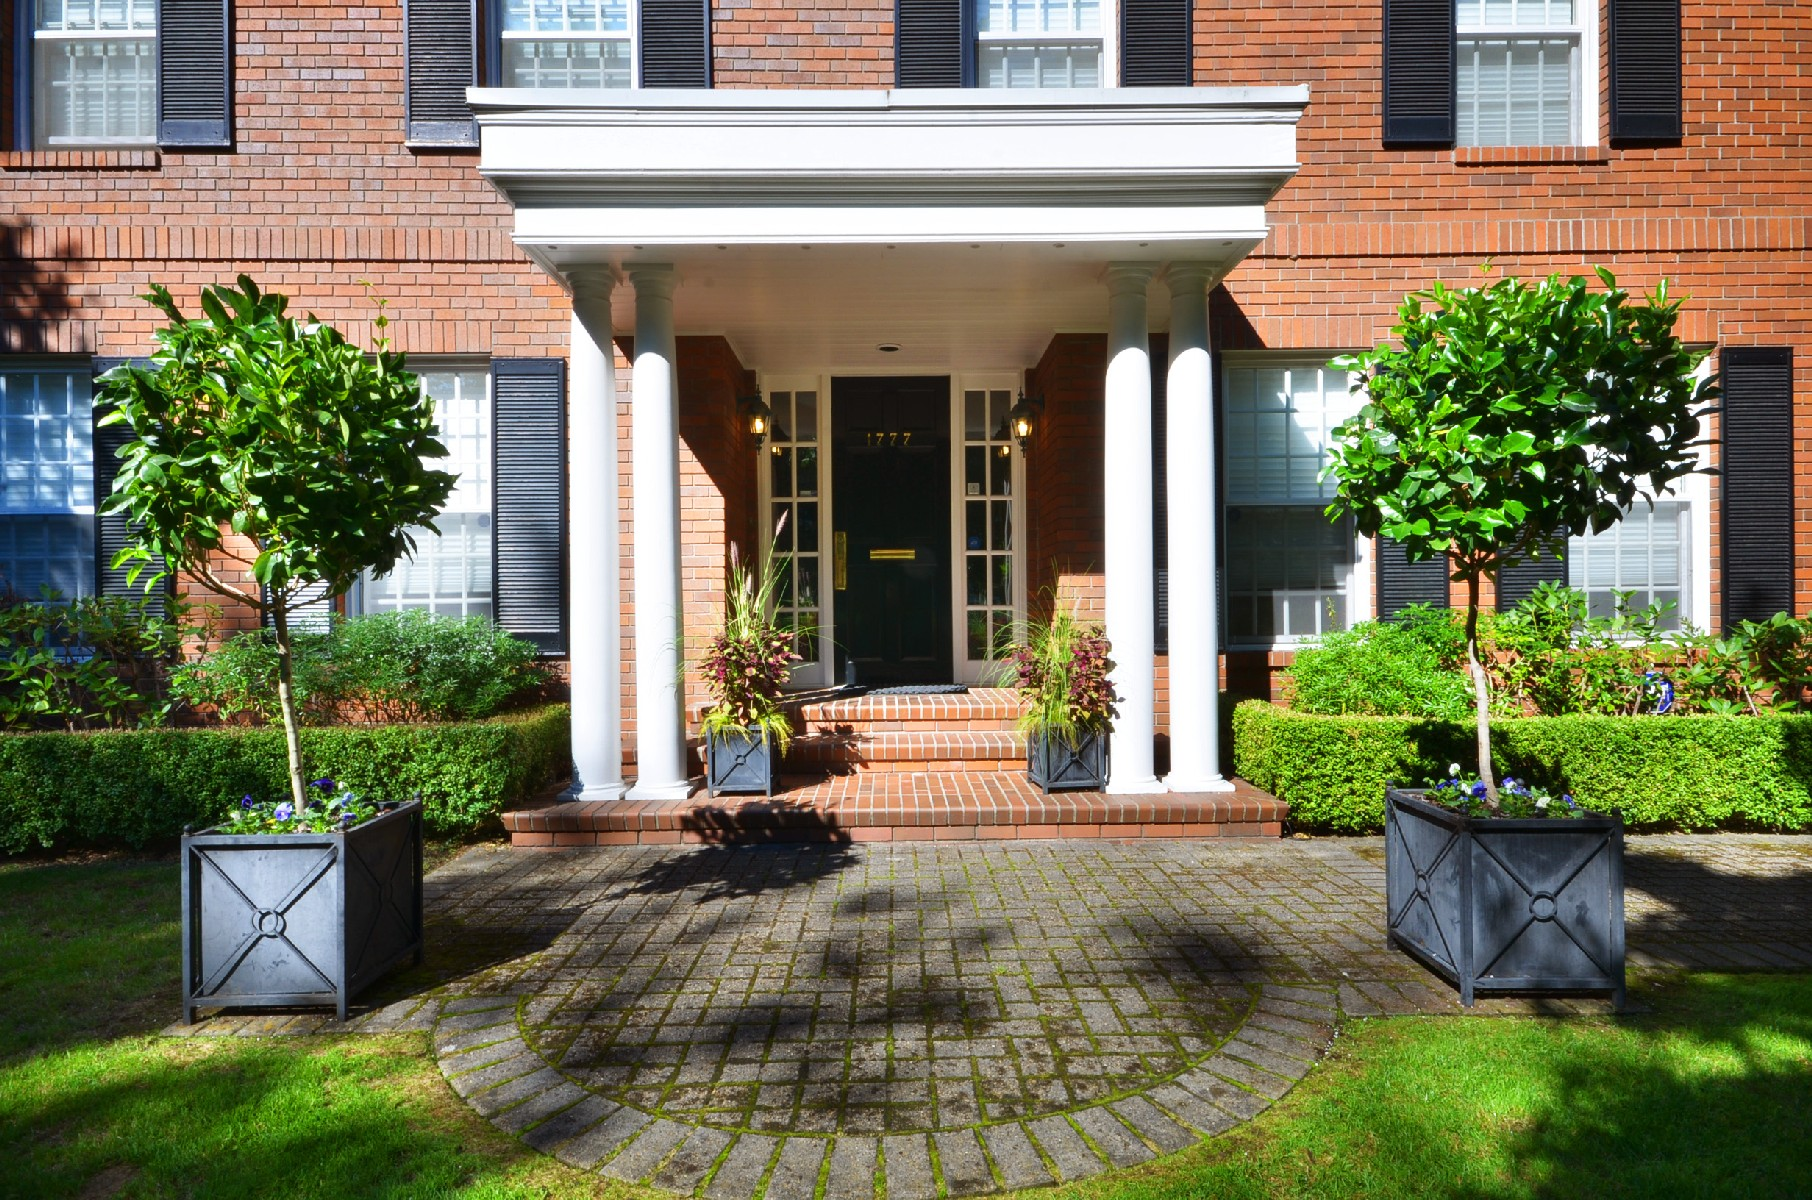 Exterior entrance - Shaughnessy - 1777 West 38th Avenue, Vancouver, BC, Canada